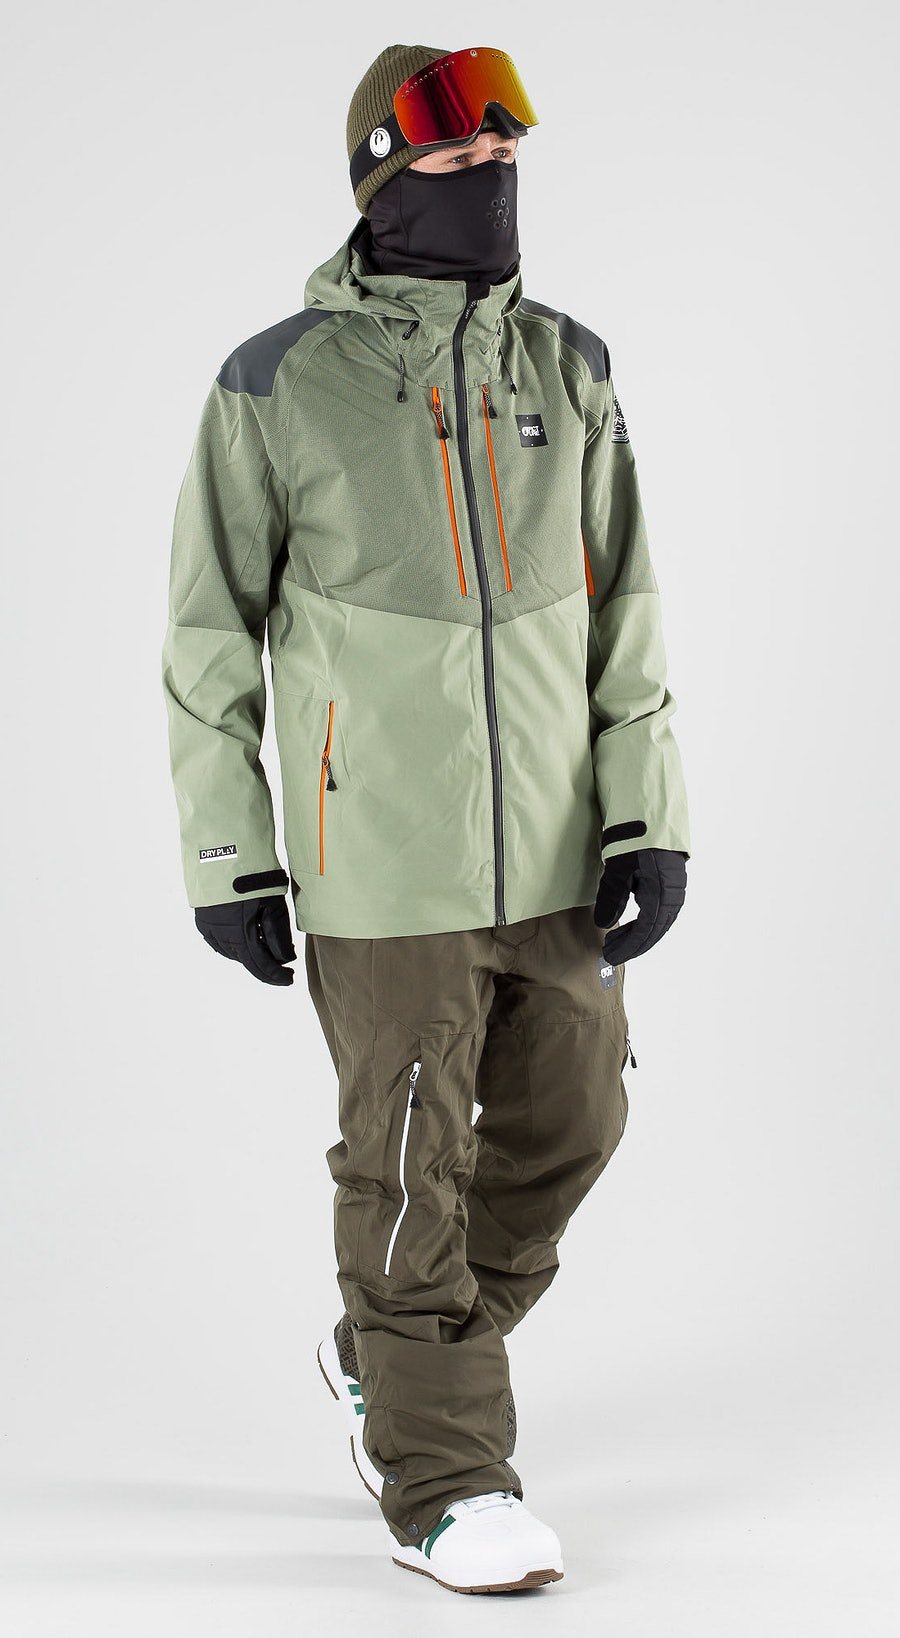 Picture Goods Dark Army Green Snowboardkleidung Multi